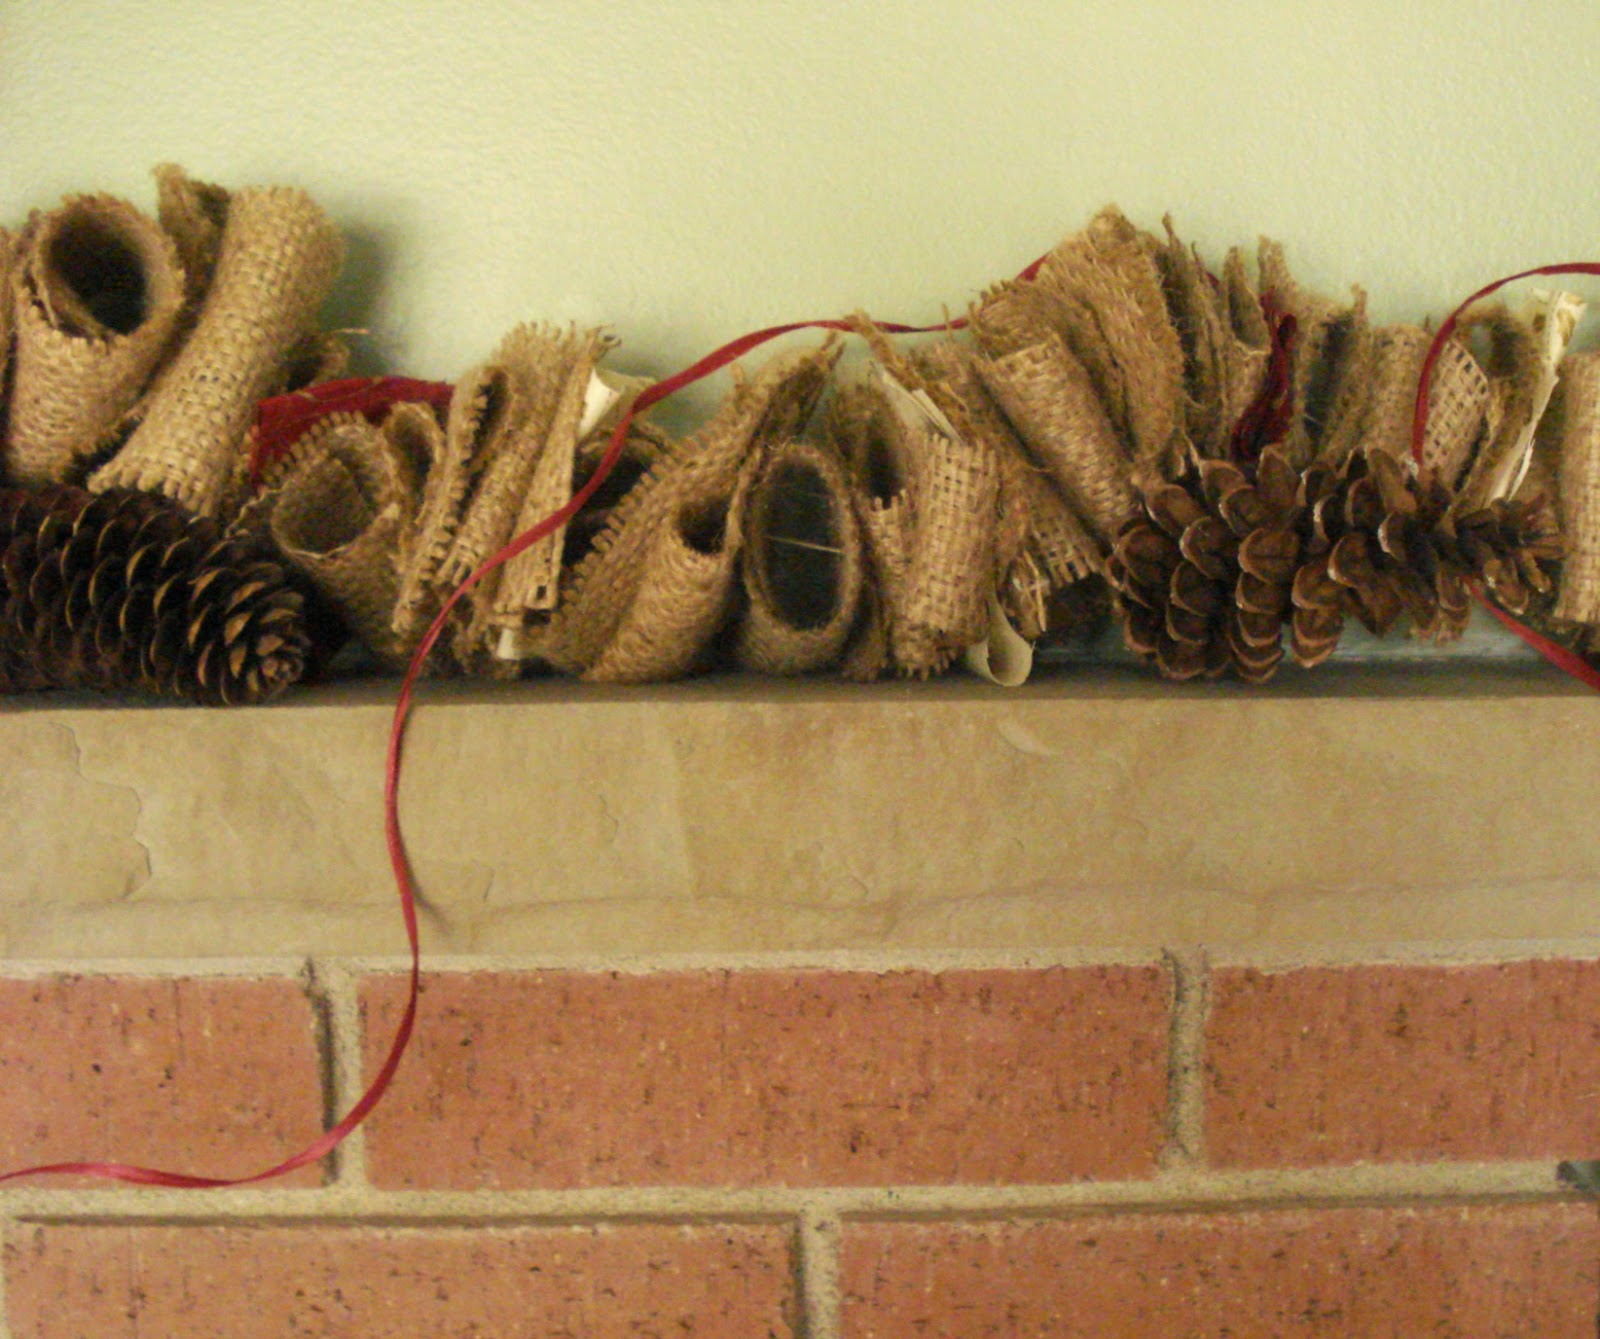 Lina and Vi Holiday Collection - Burlap Garland